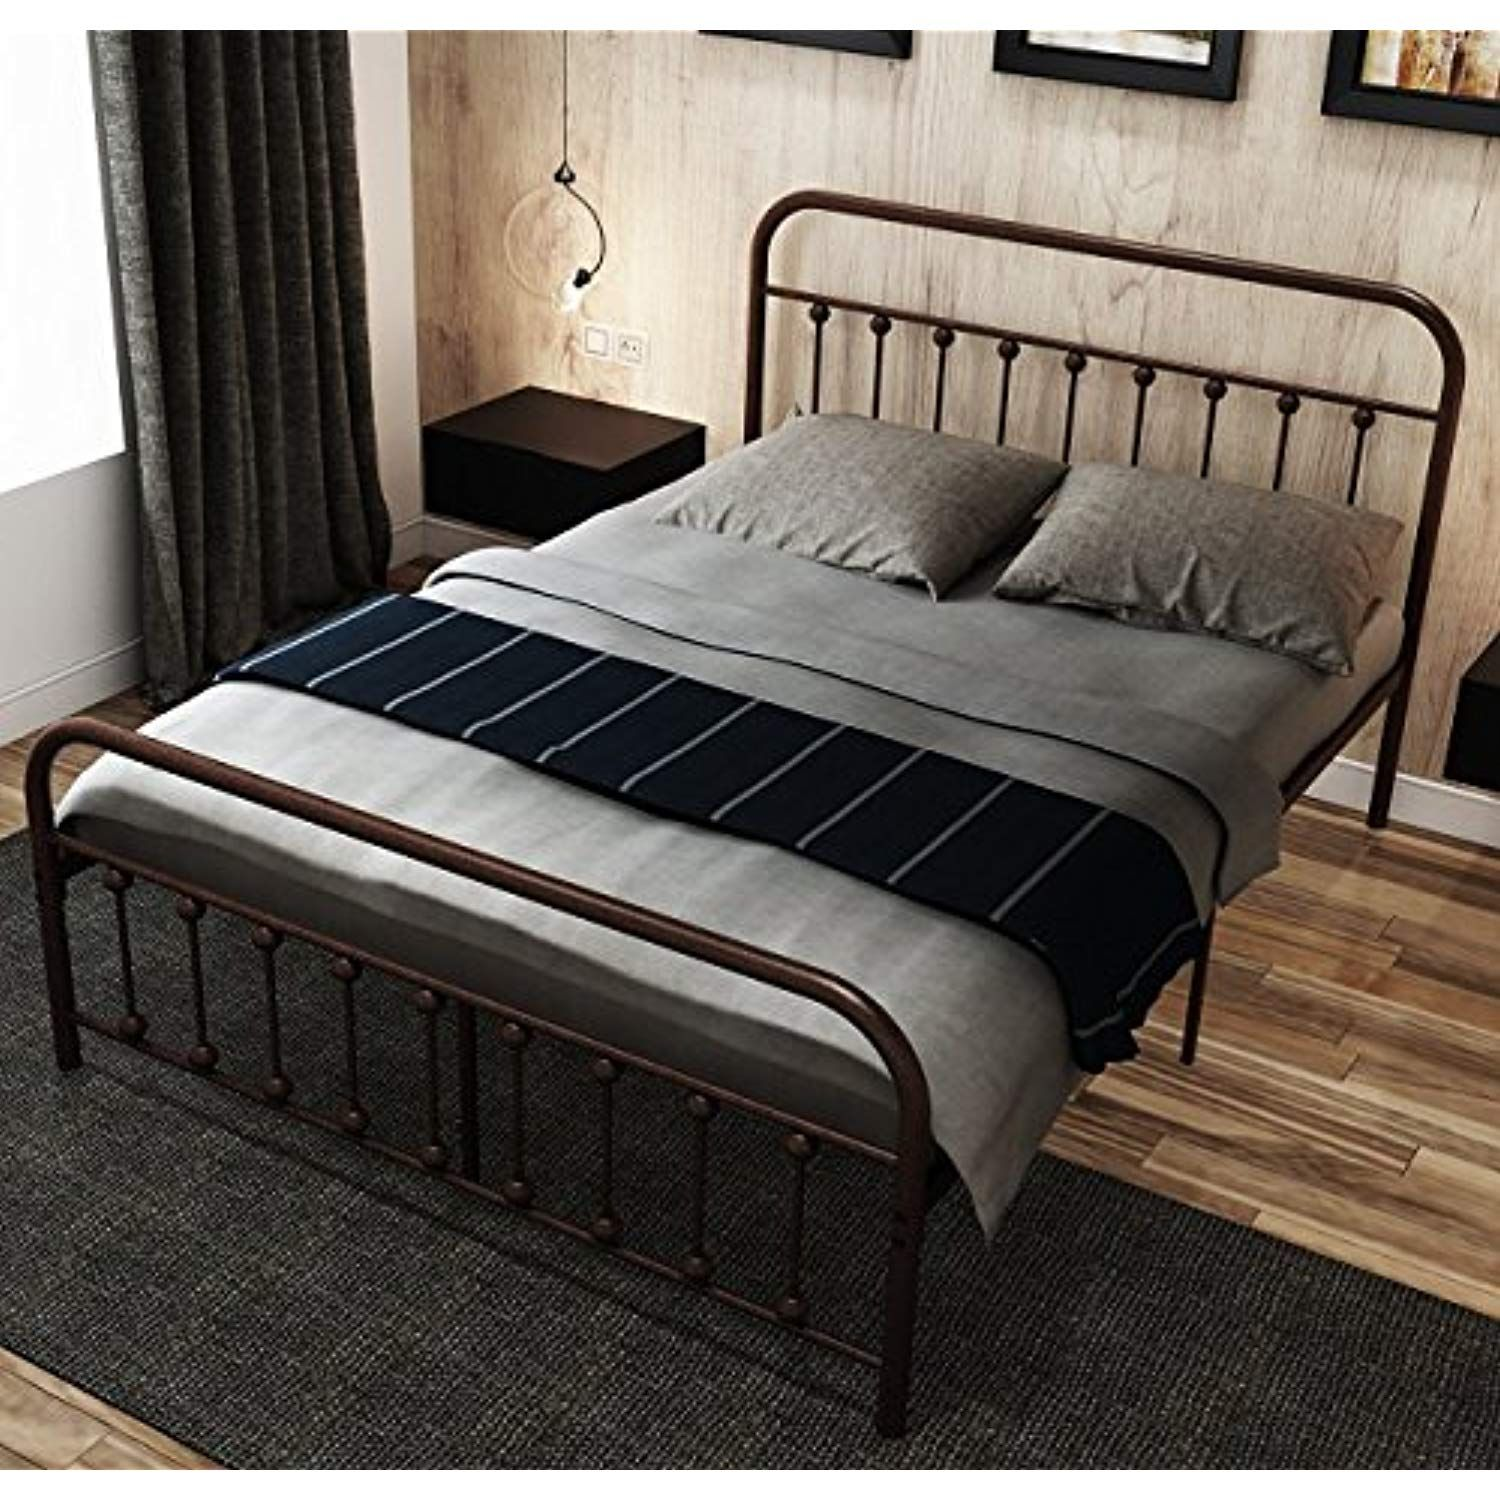 Metal Bed Frame Queen The Simple Style Iron Art Double Bed Has The